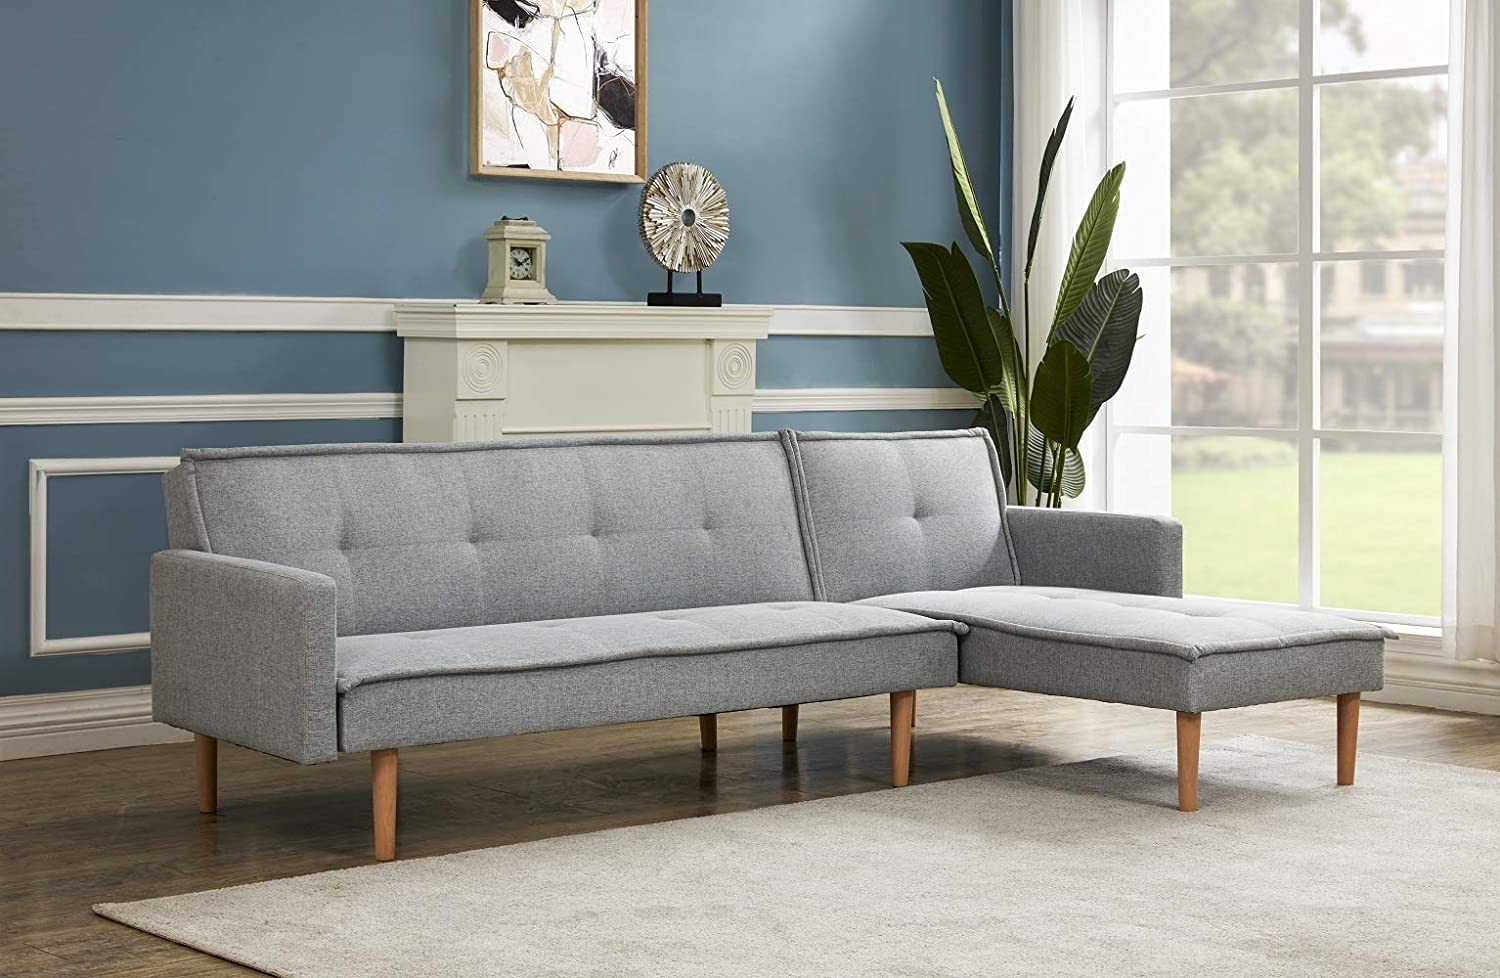 PCAFRS Sectional Sofa Couch for Living Room, L Shaped Sectional Sofa Couch, Futon Sofa Bed, Sofa Couch Set with Chaise Lounge for Living Room and Apartment, Adjustable Back, Light Grey